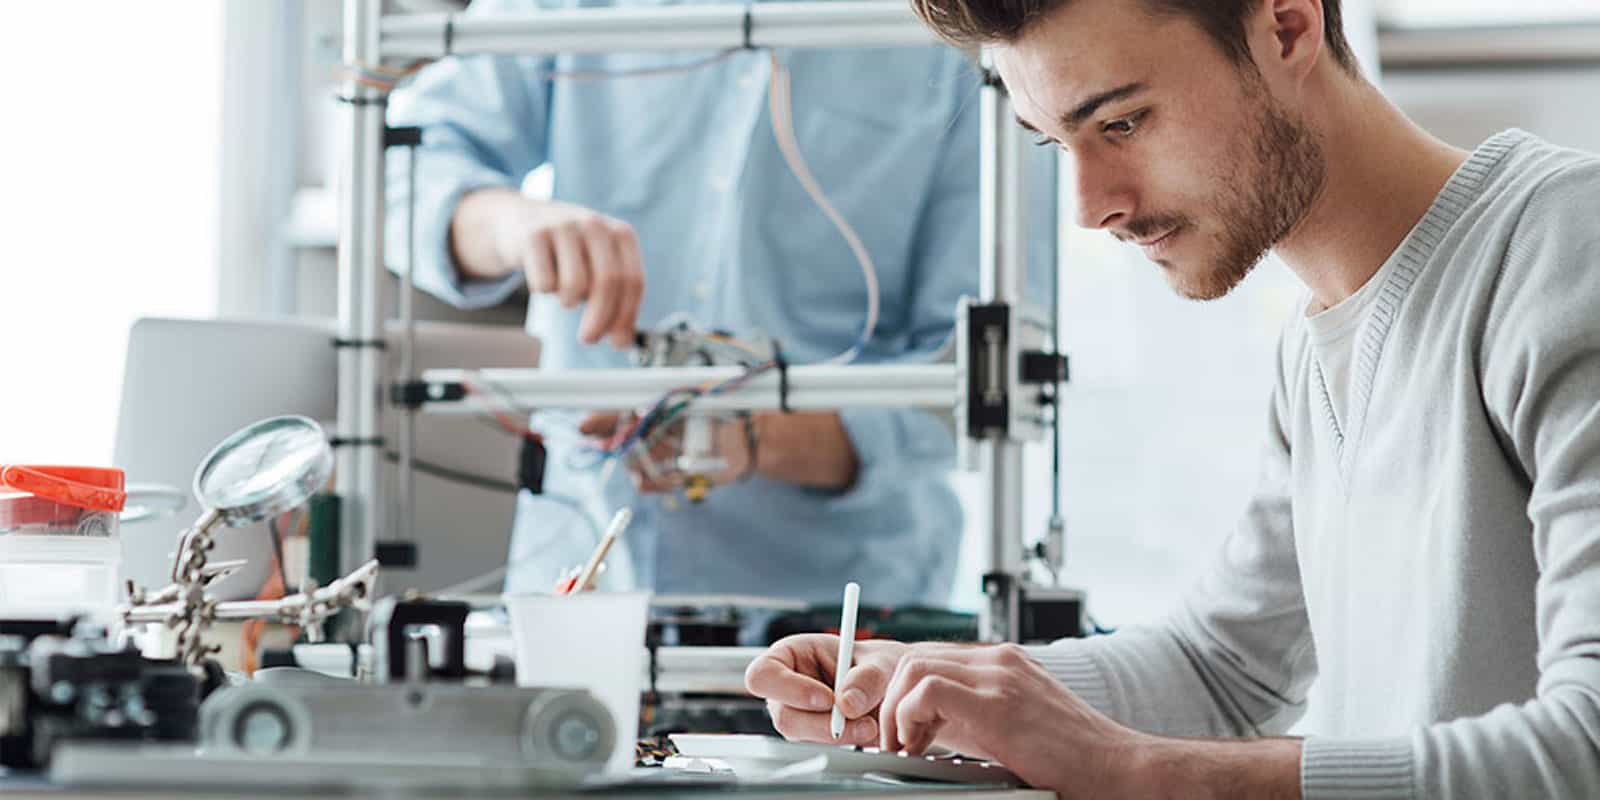 Learn how to use 3D printers, CAD software, CNC machines and more with this bundle of a dozen instructional eBooks.